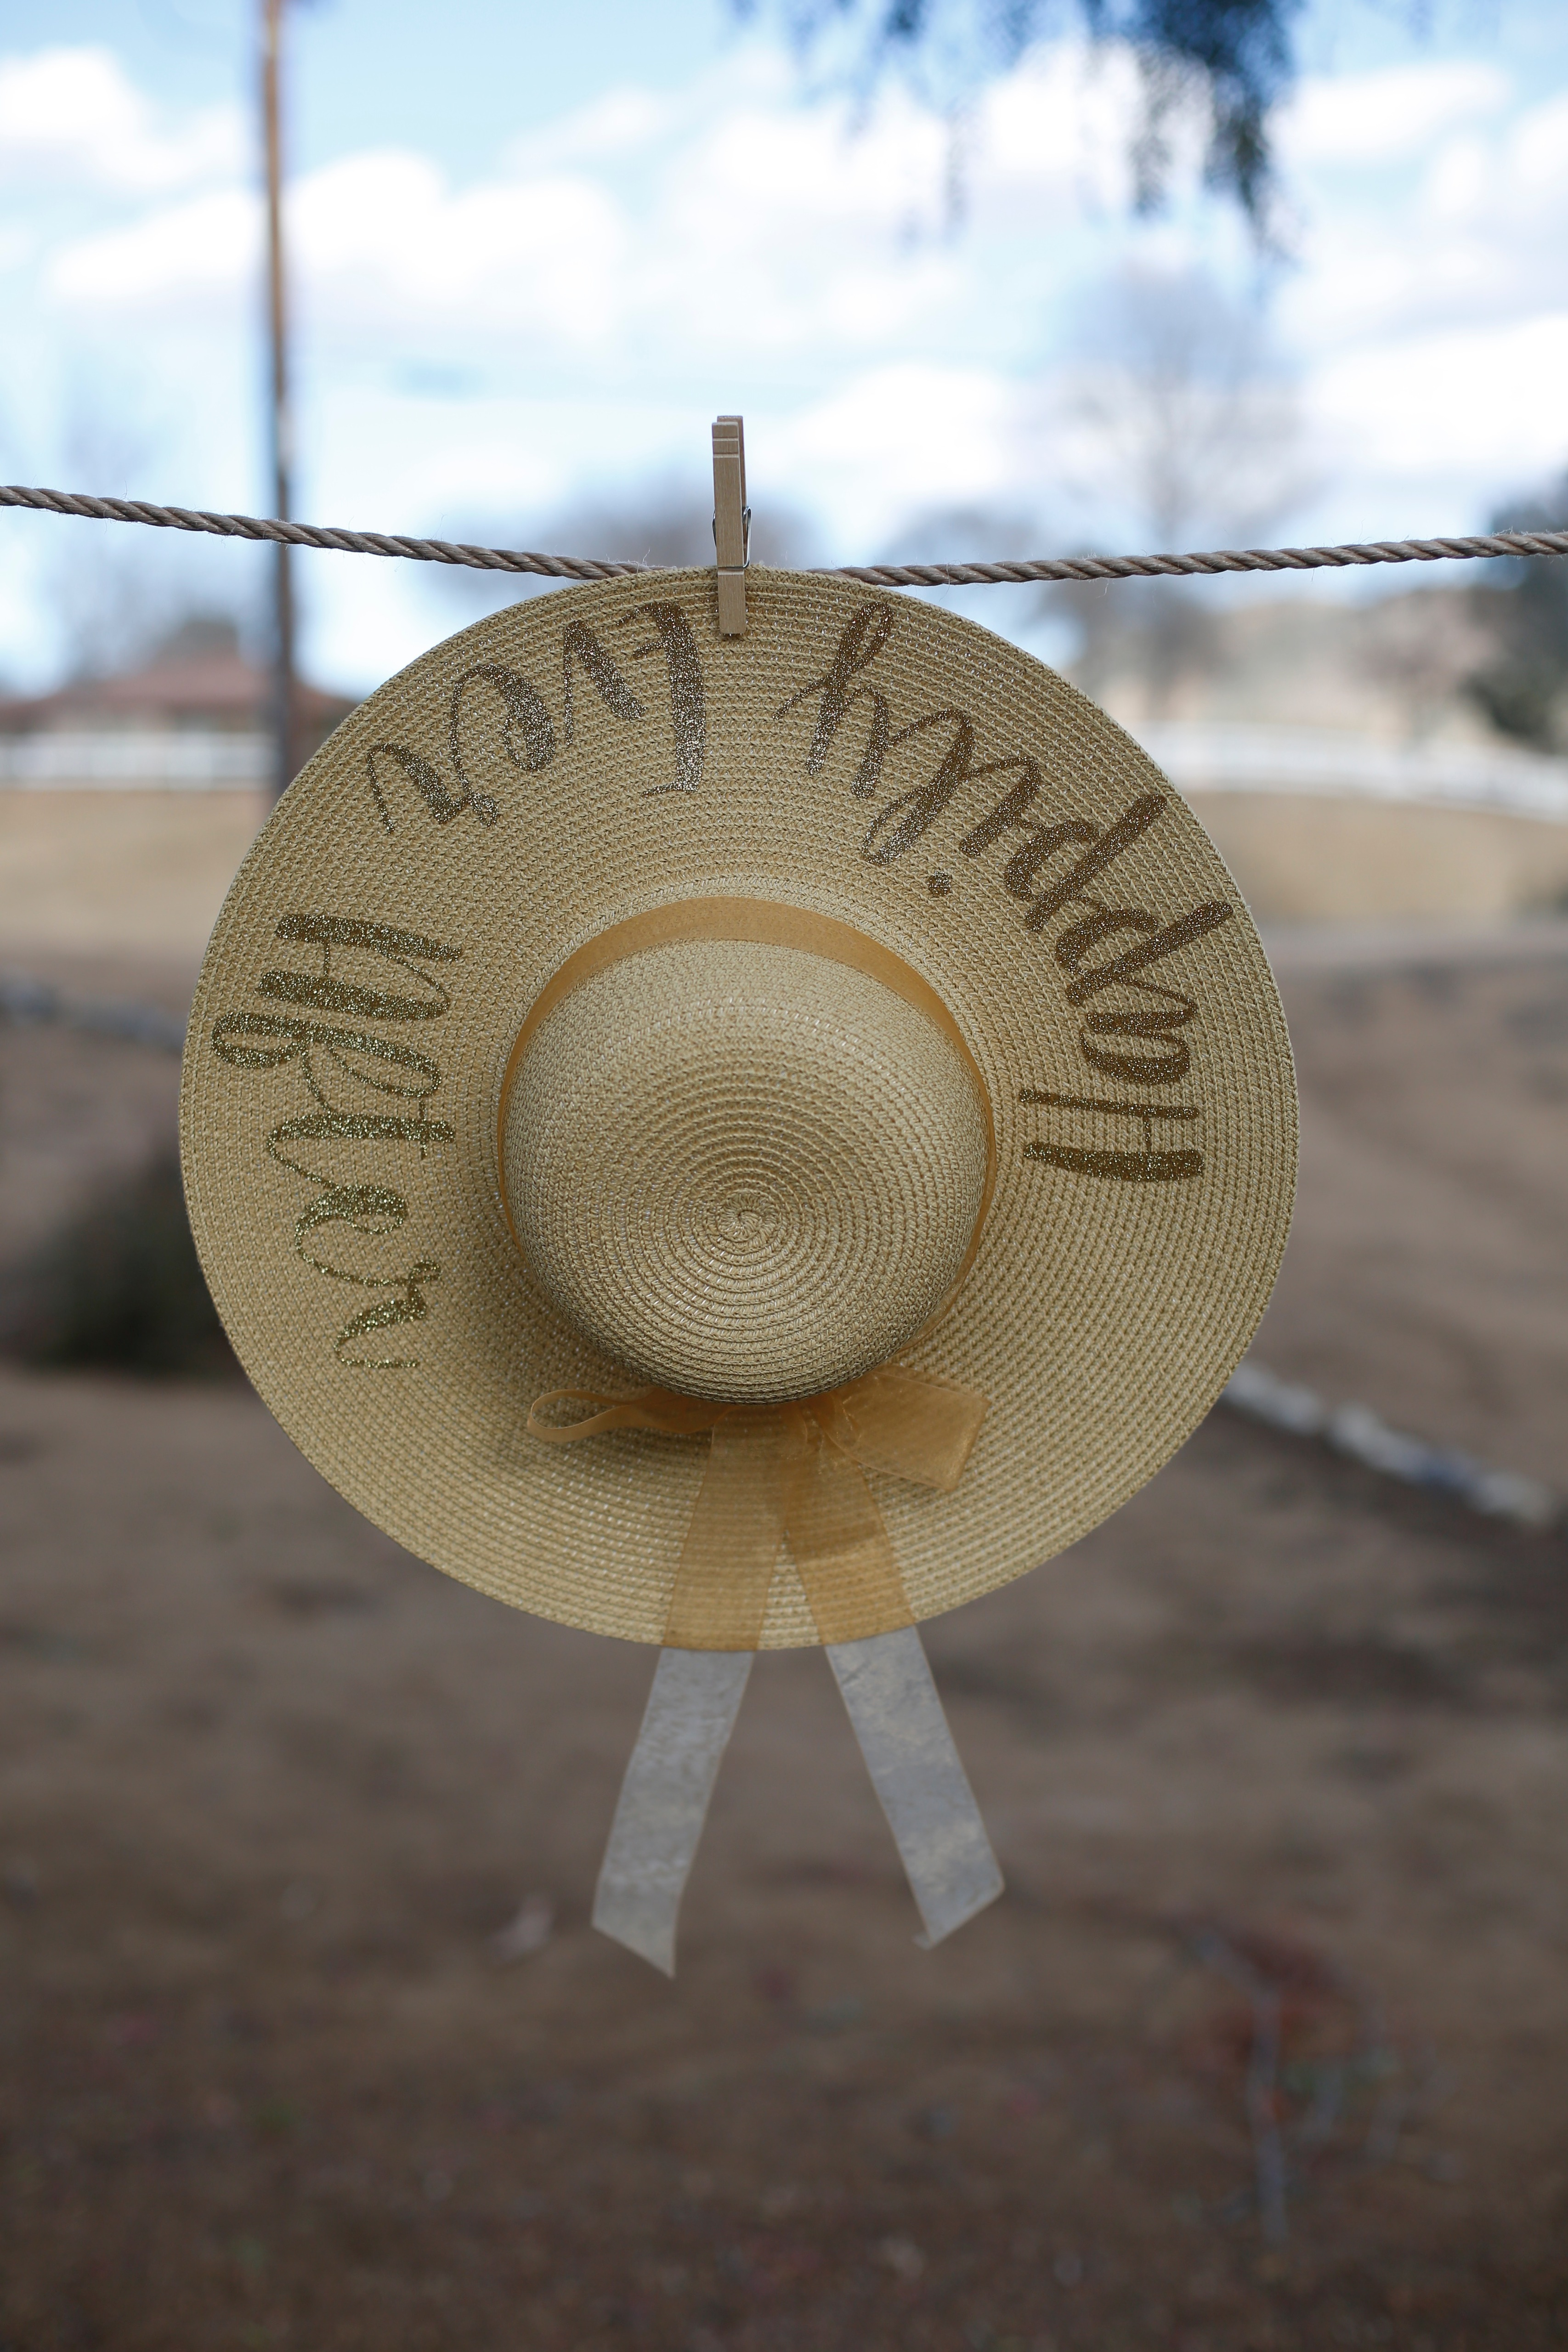 Honeymoon Hat -Shown in tan with with gold glitter. Tone on tone is classic!  by Wicked Stitches Gifts